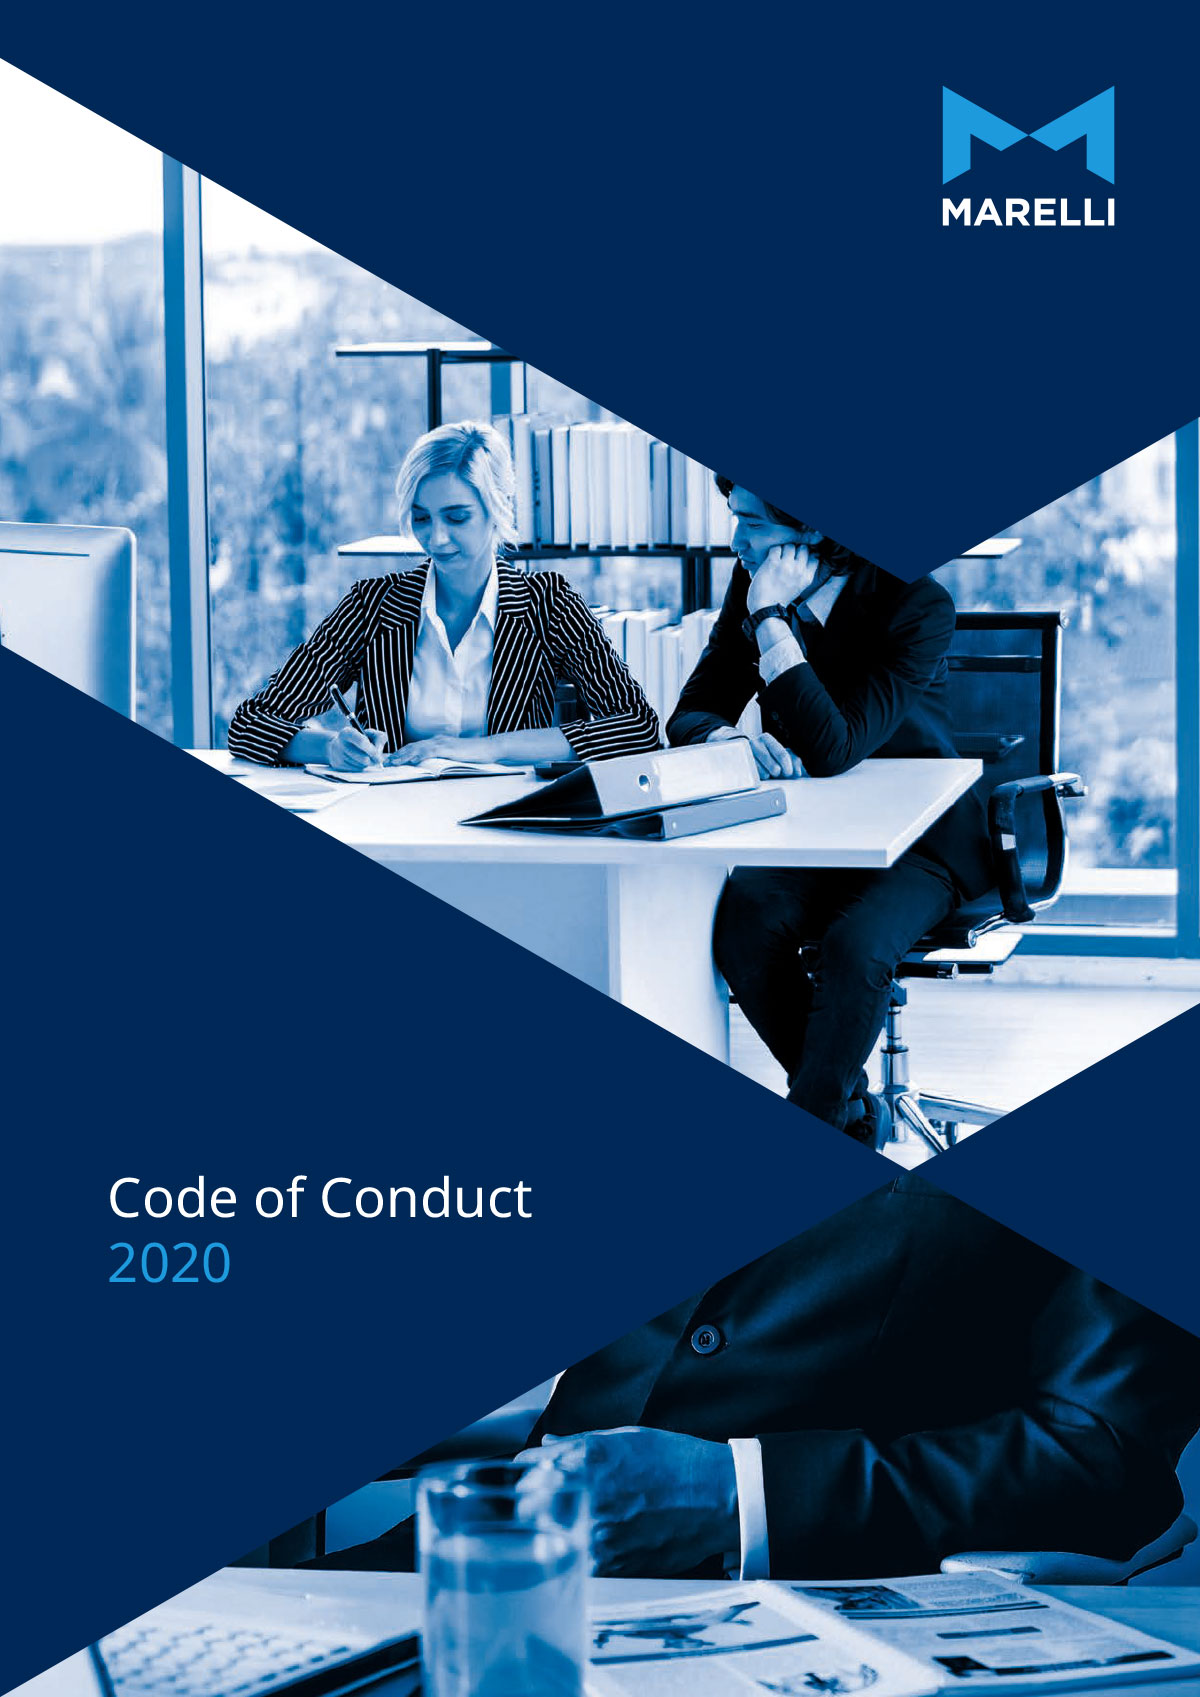 MARELLI Code of Conduct